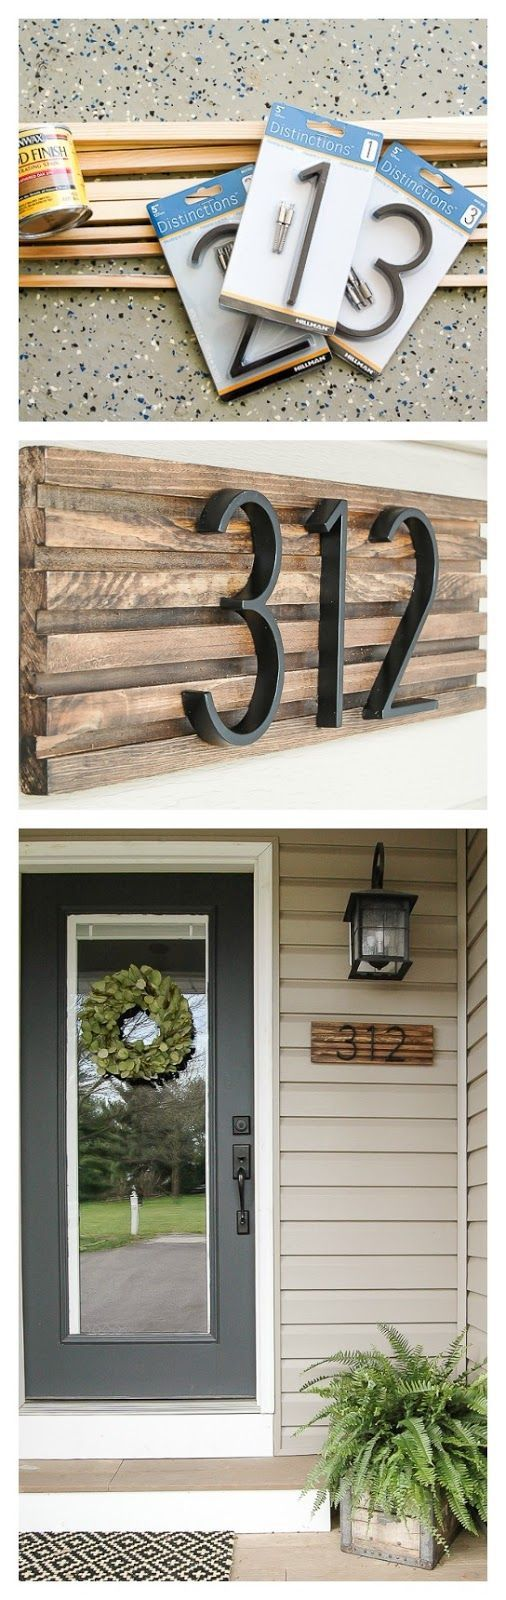 25 Best Ideas About Address Numbers On Pinterest